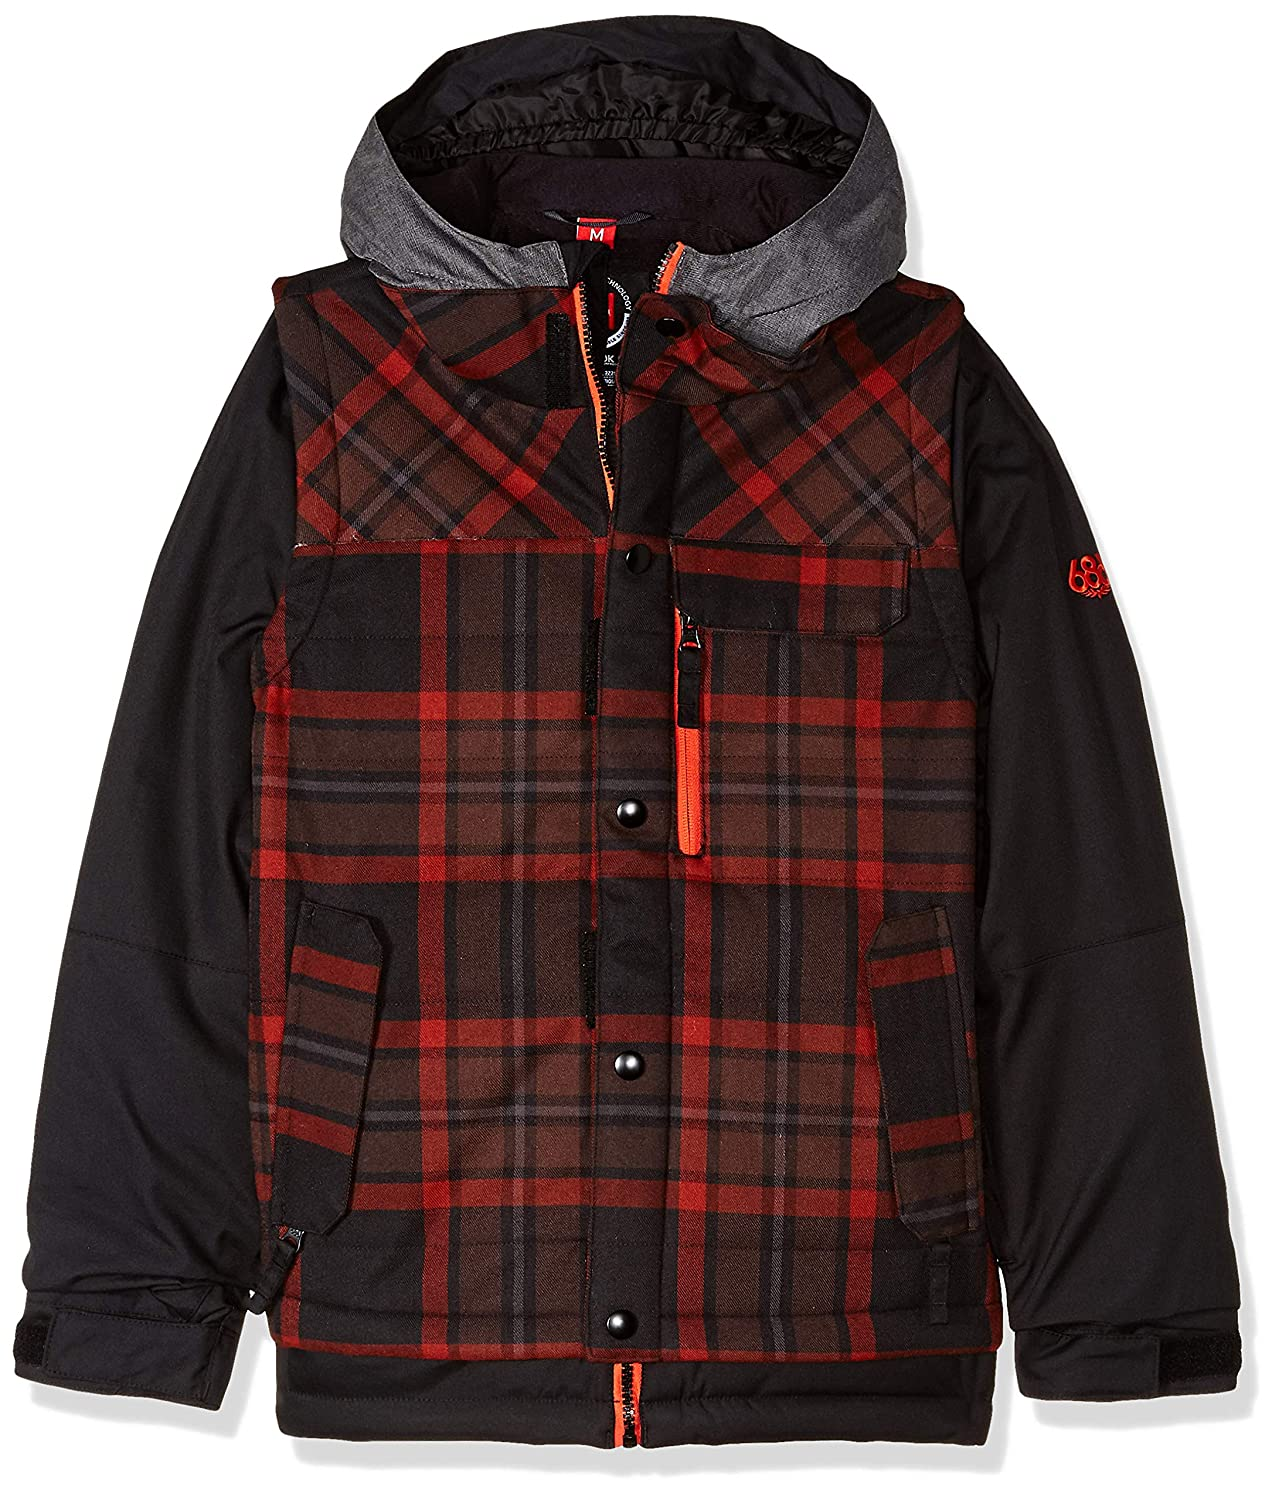 Image of 686 Boys' Scout Insulated Jackets | Waterproof Ski/Snowboard Coats Jackets